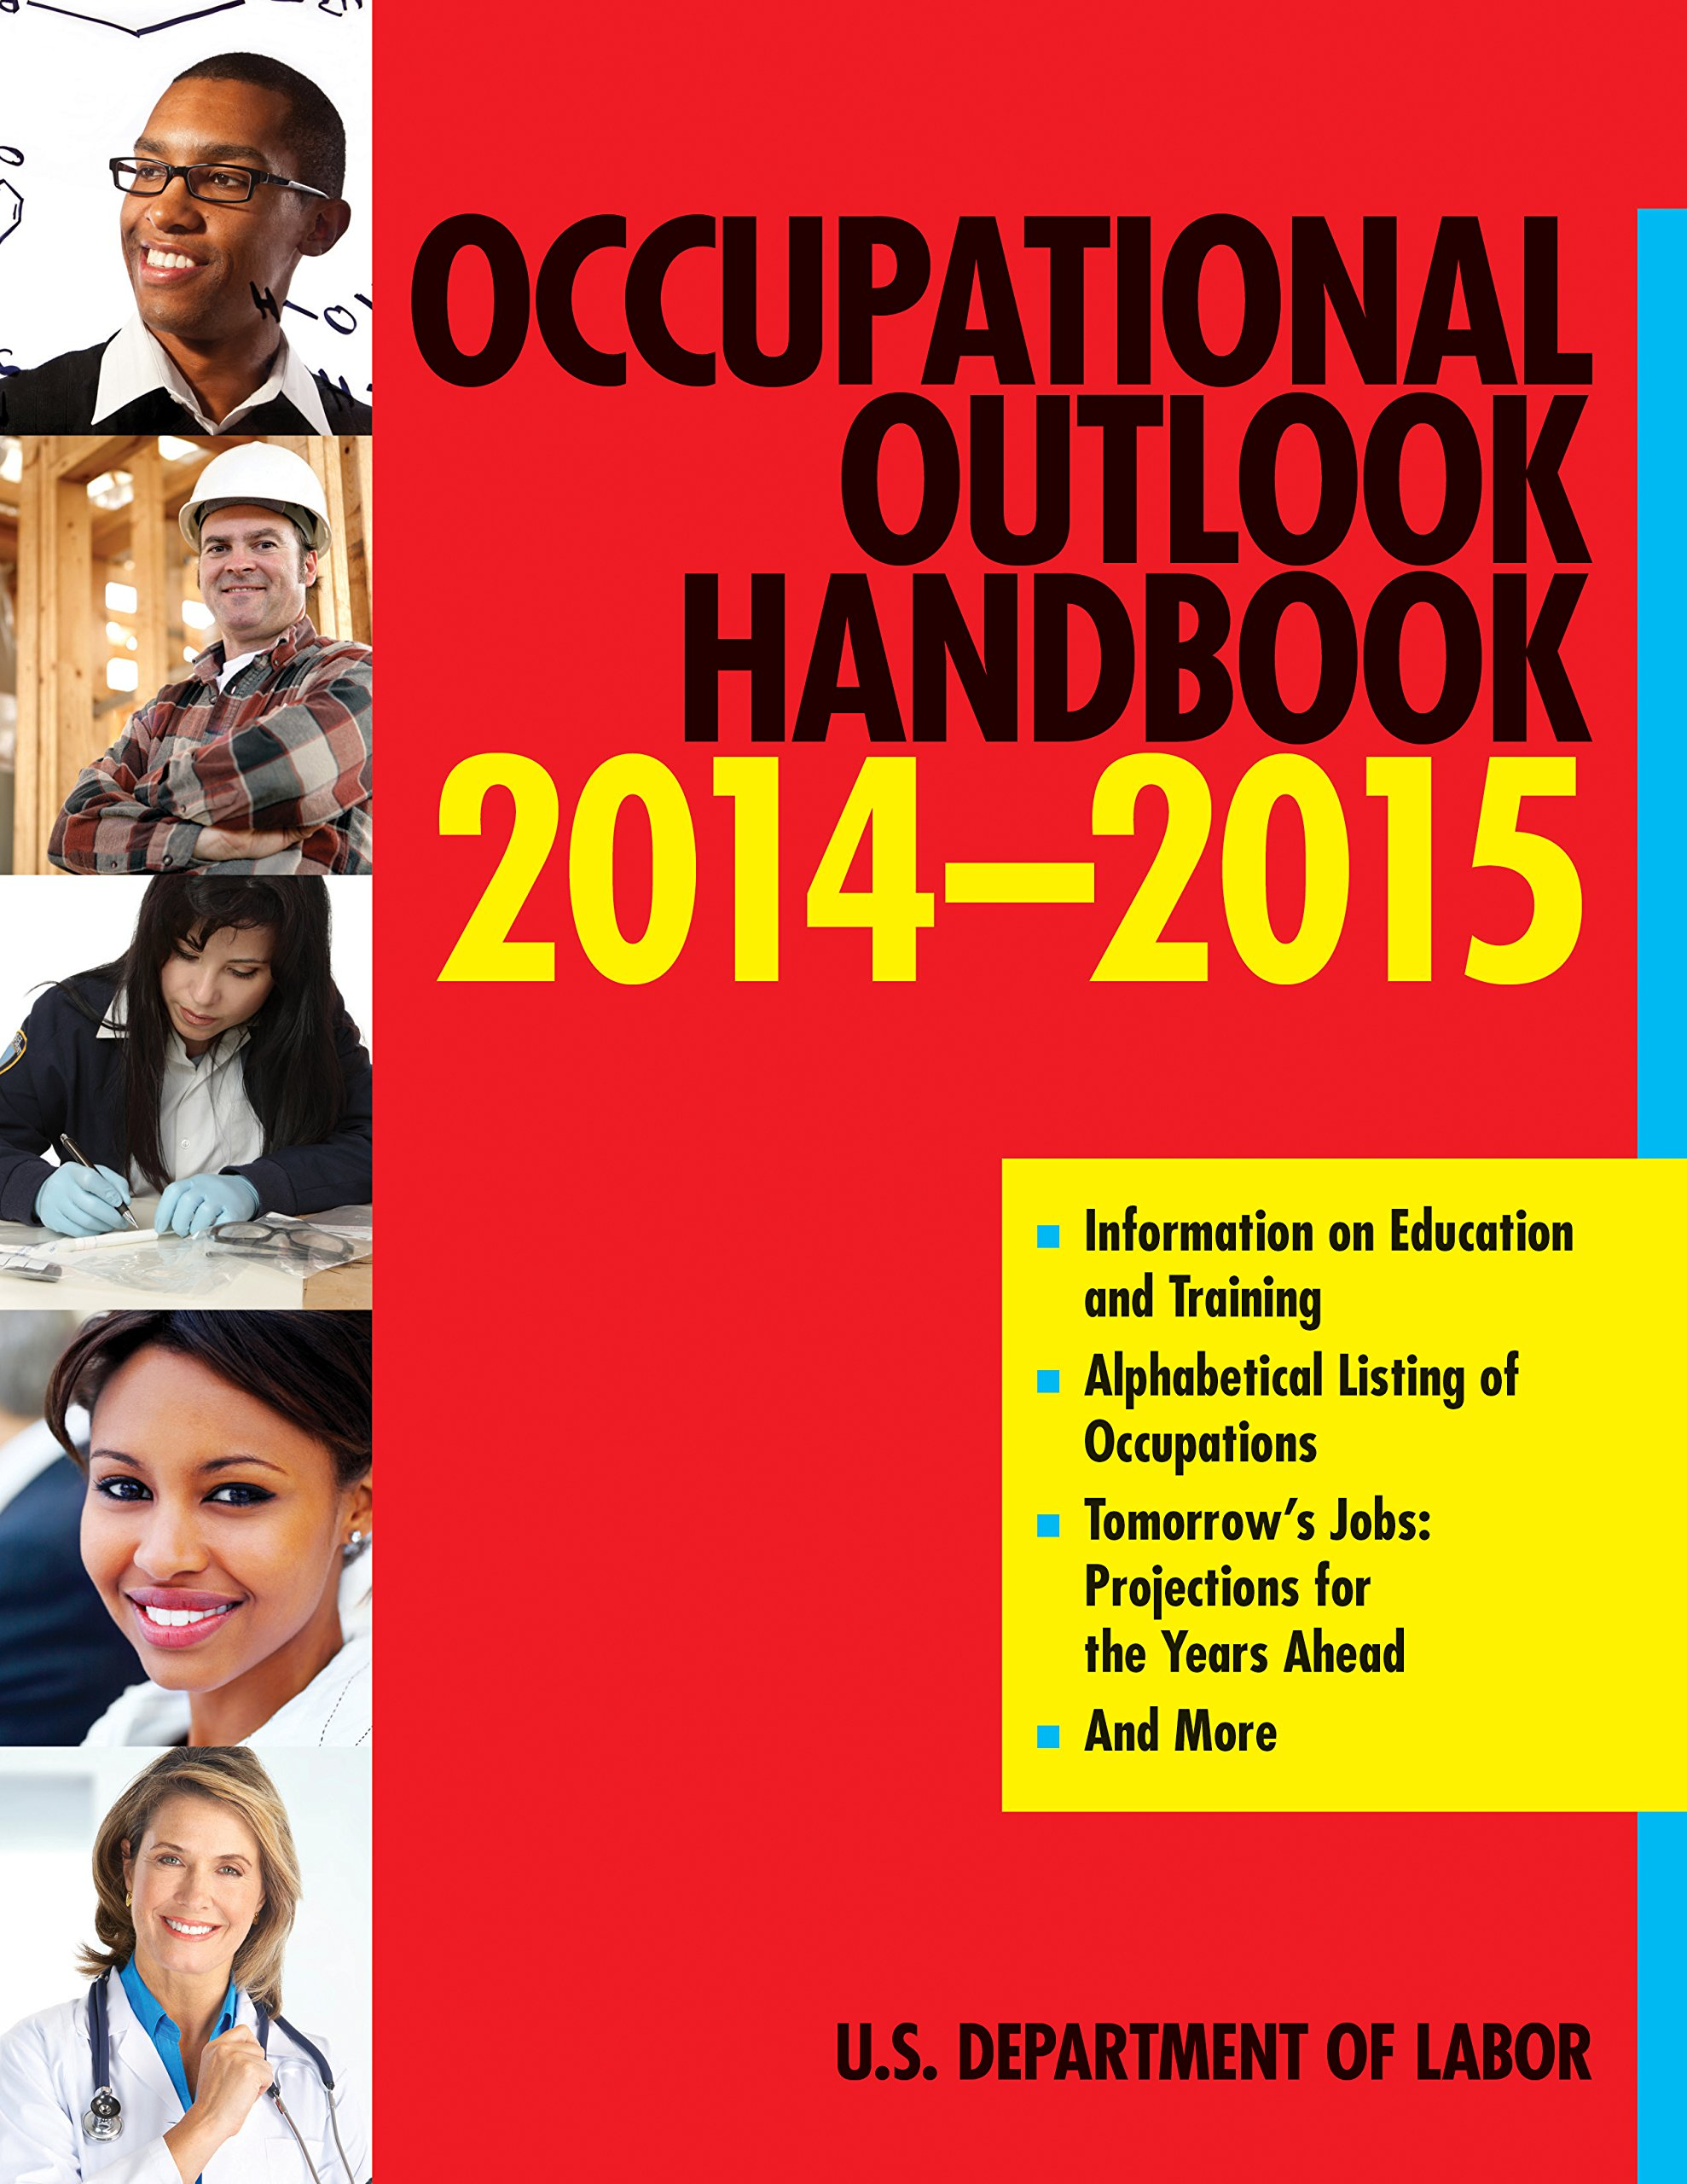 occupational outlook handbook 2014 2015 occupational outlook occupational outlook handbook 2014 2015 occupational outlook handbook norton the u s department of labor 9781628738117 amazon com books